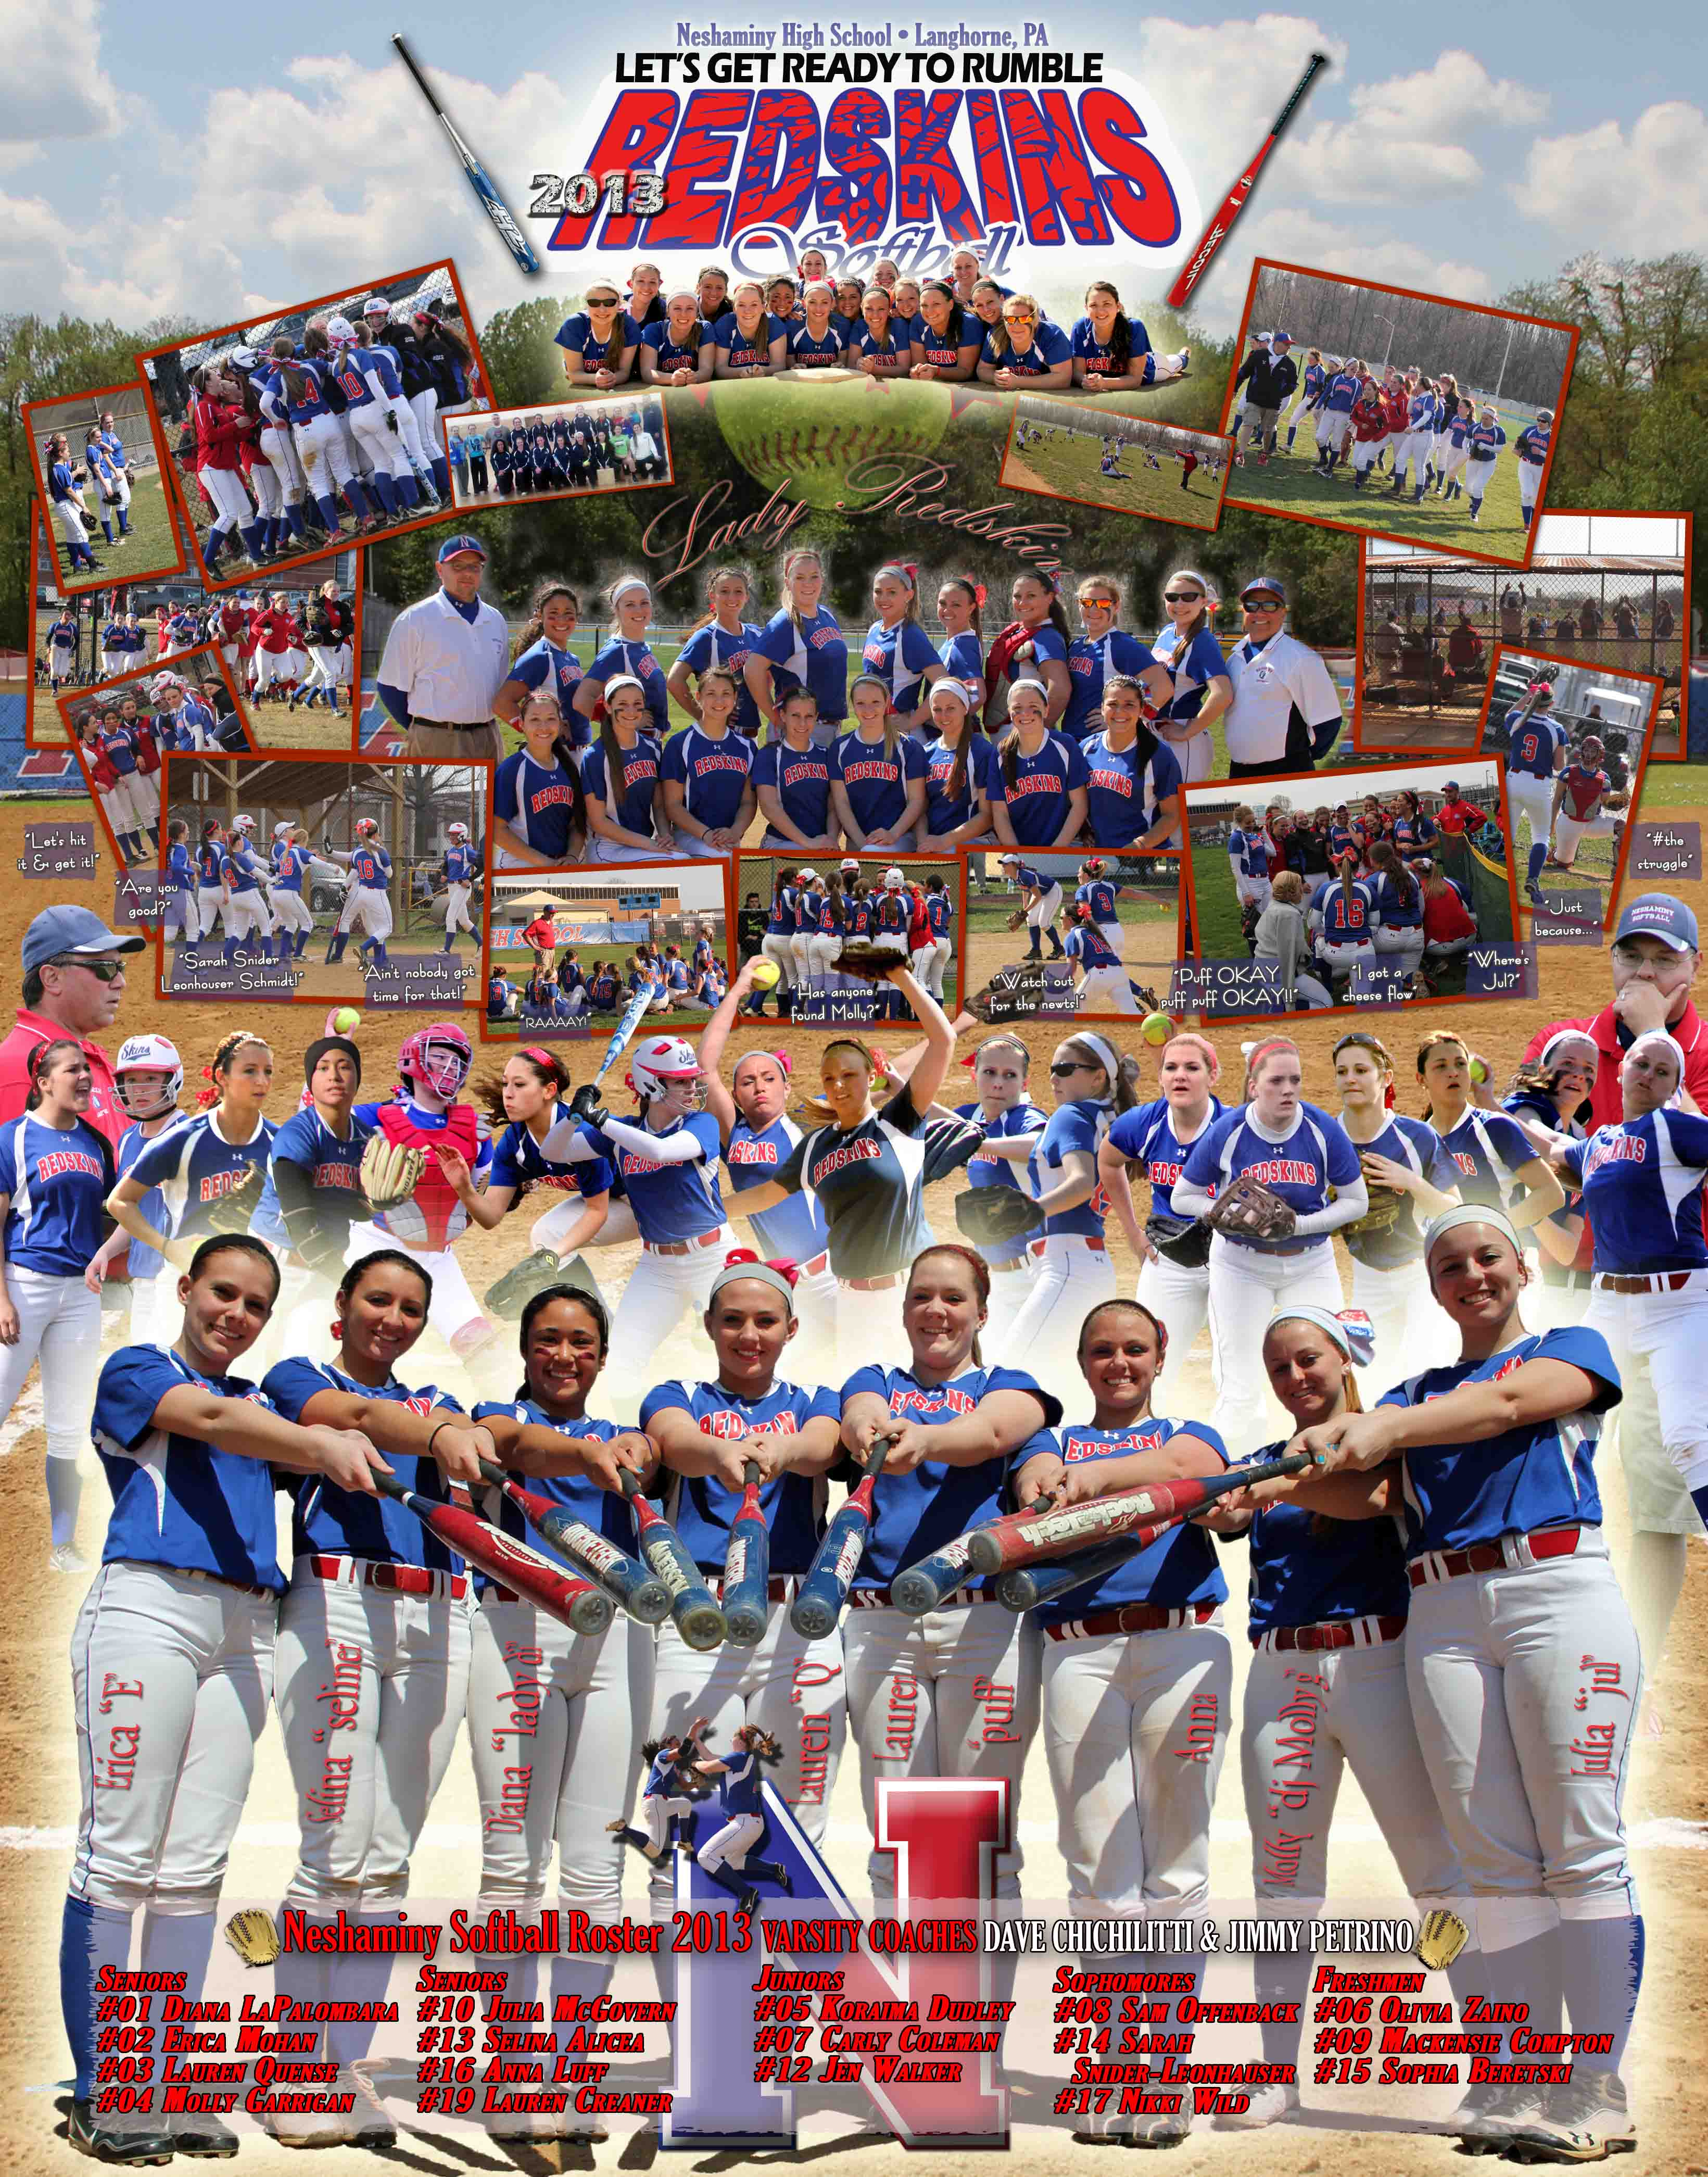 NHS Varsity Softball Poster 2013